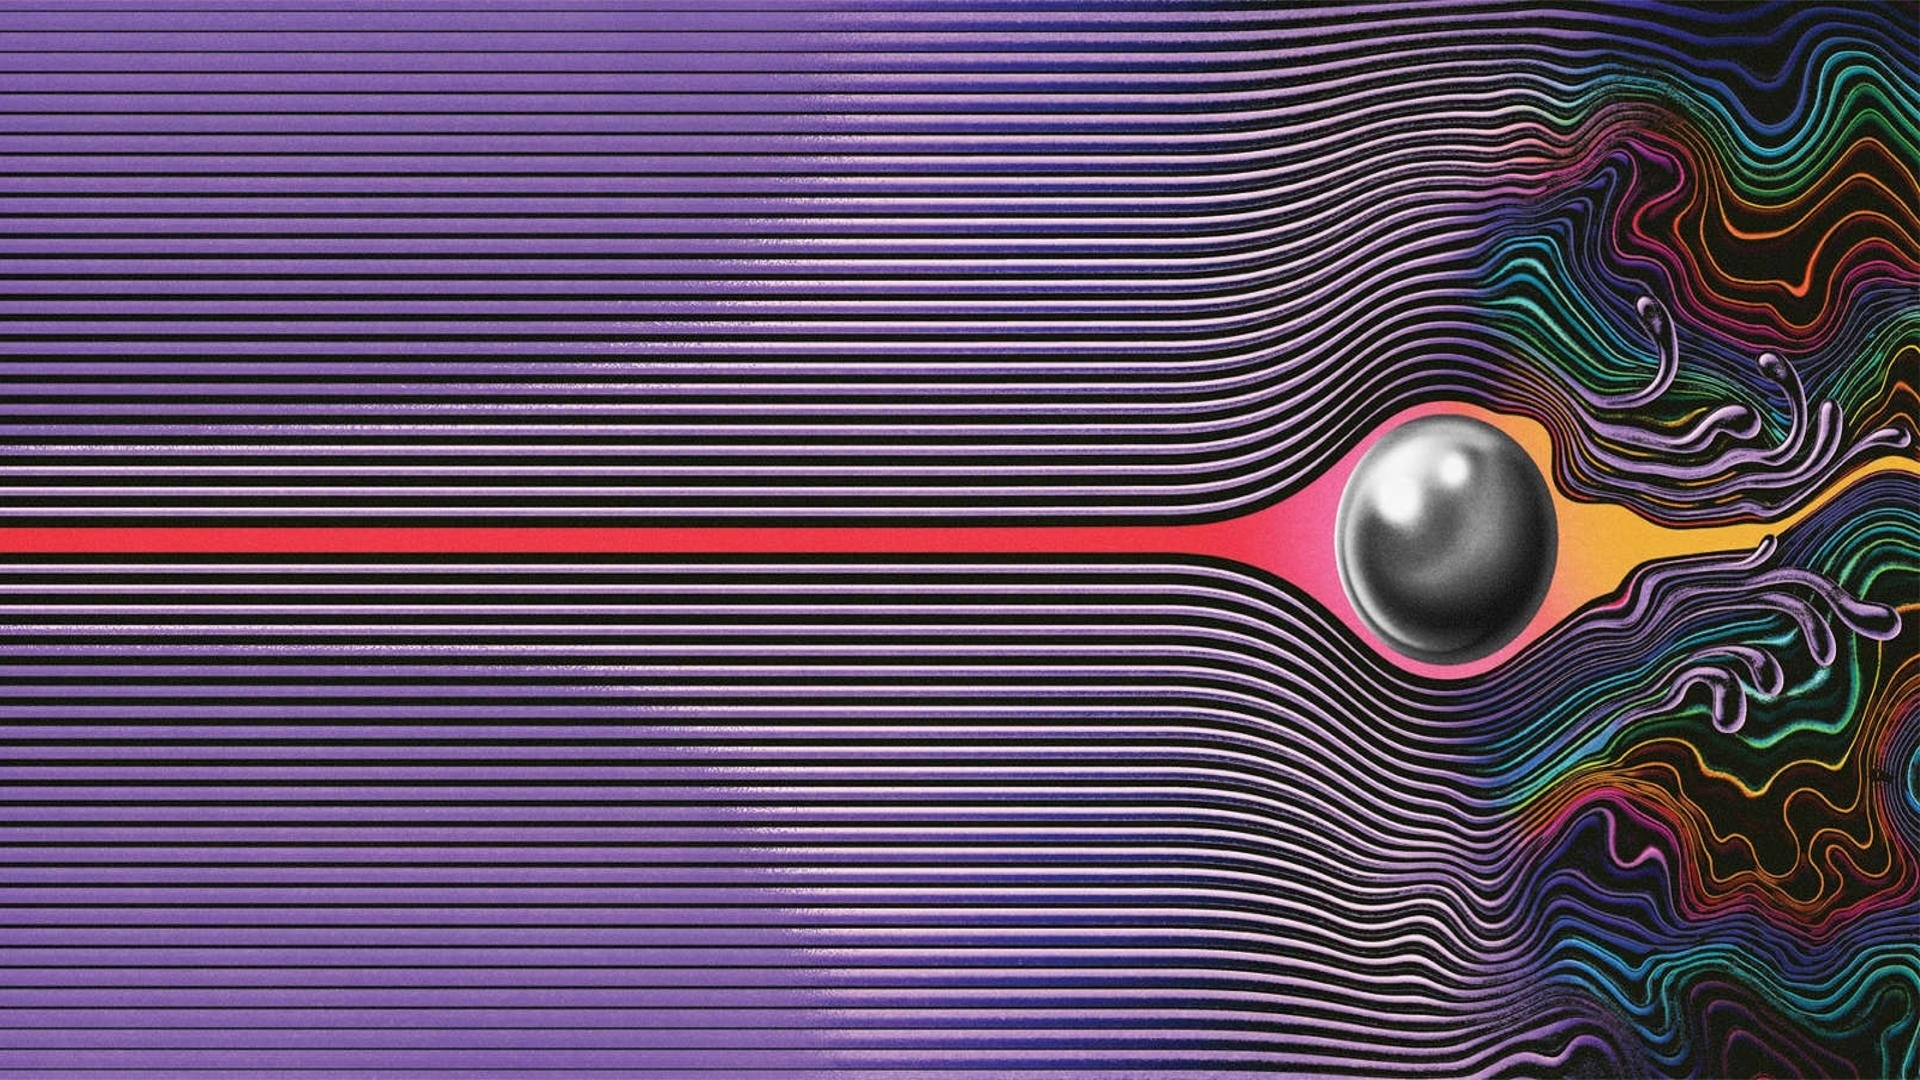 10 Top Tame Impala Currents Wallpaper FULL HD 1920×1080 For PC Desktop